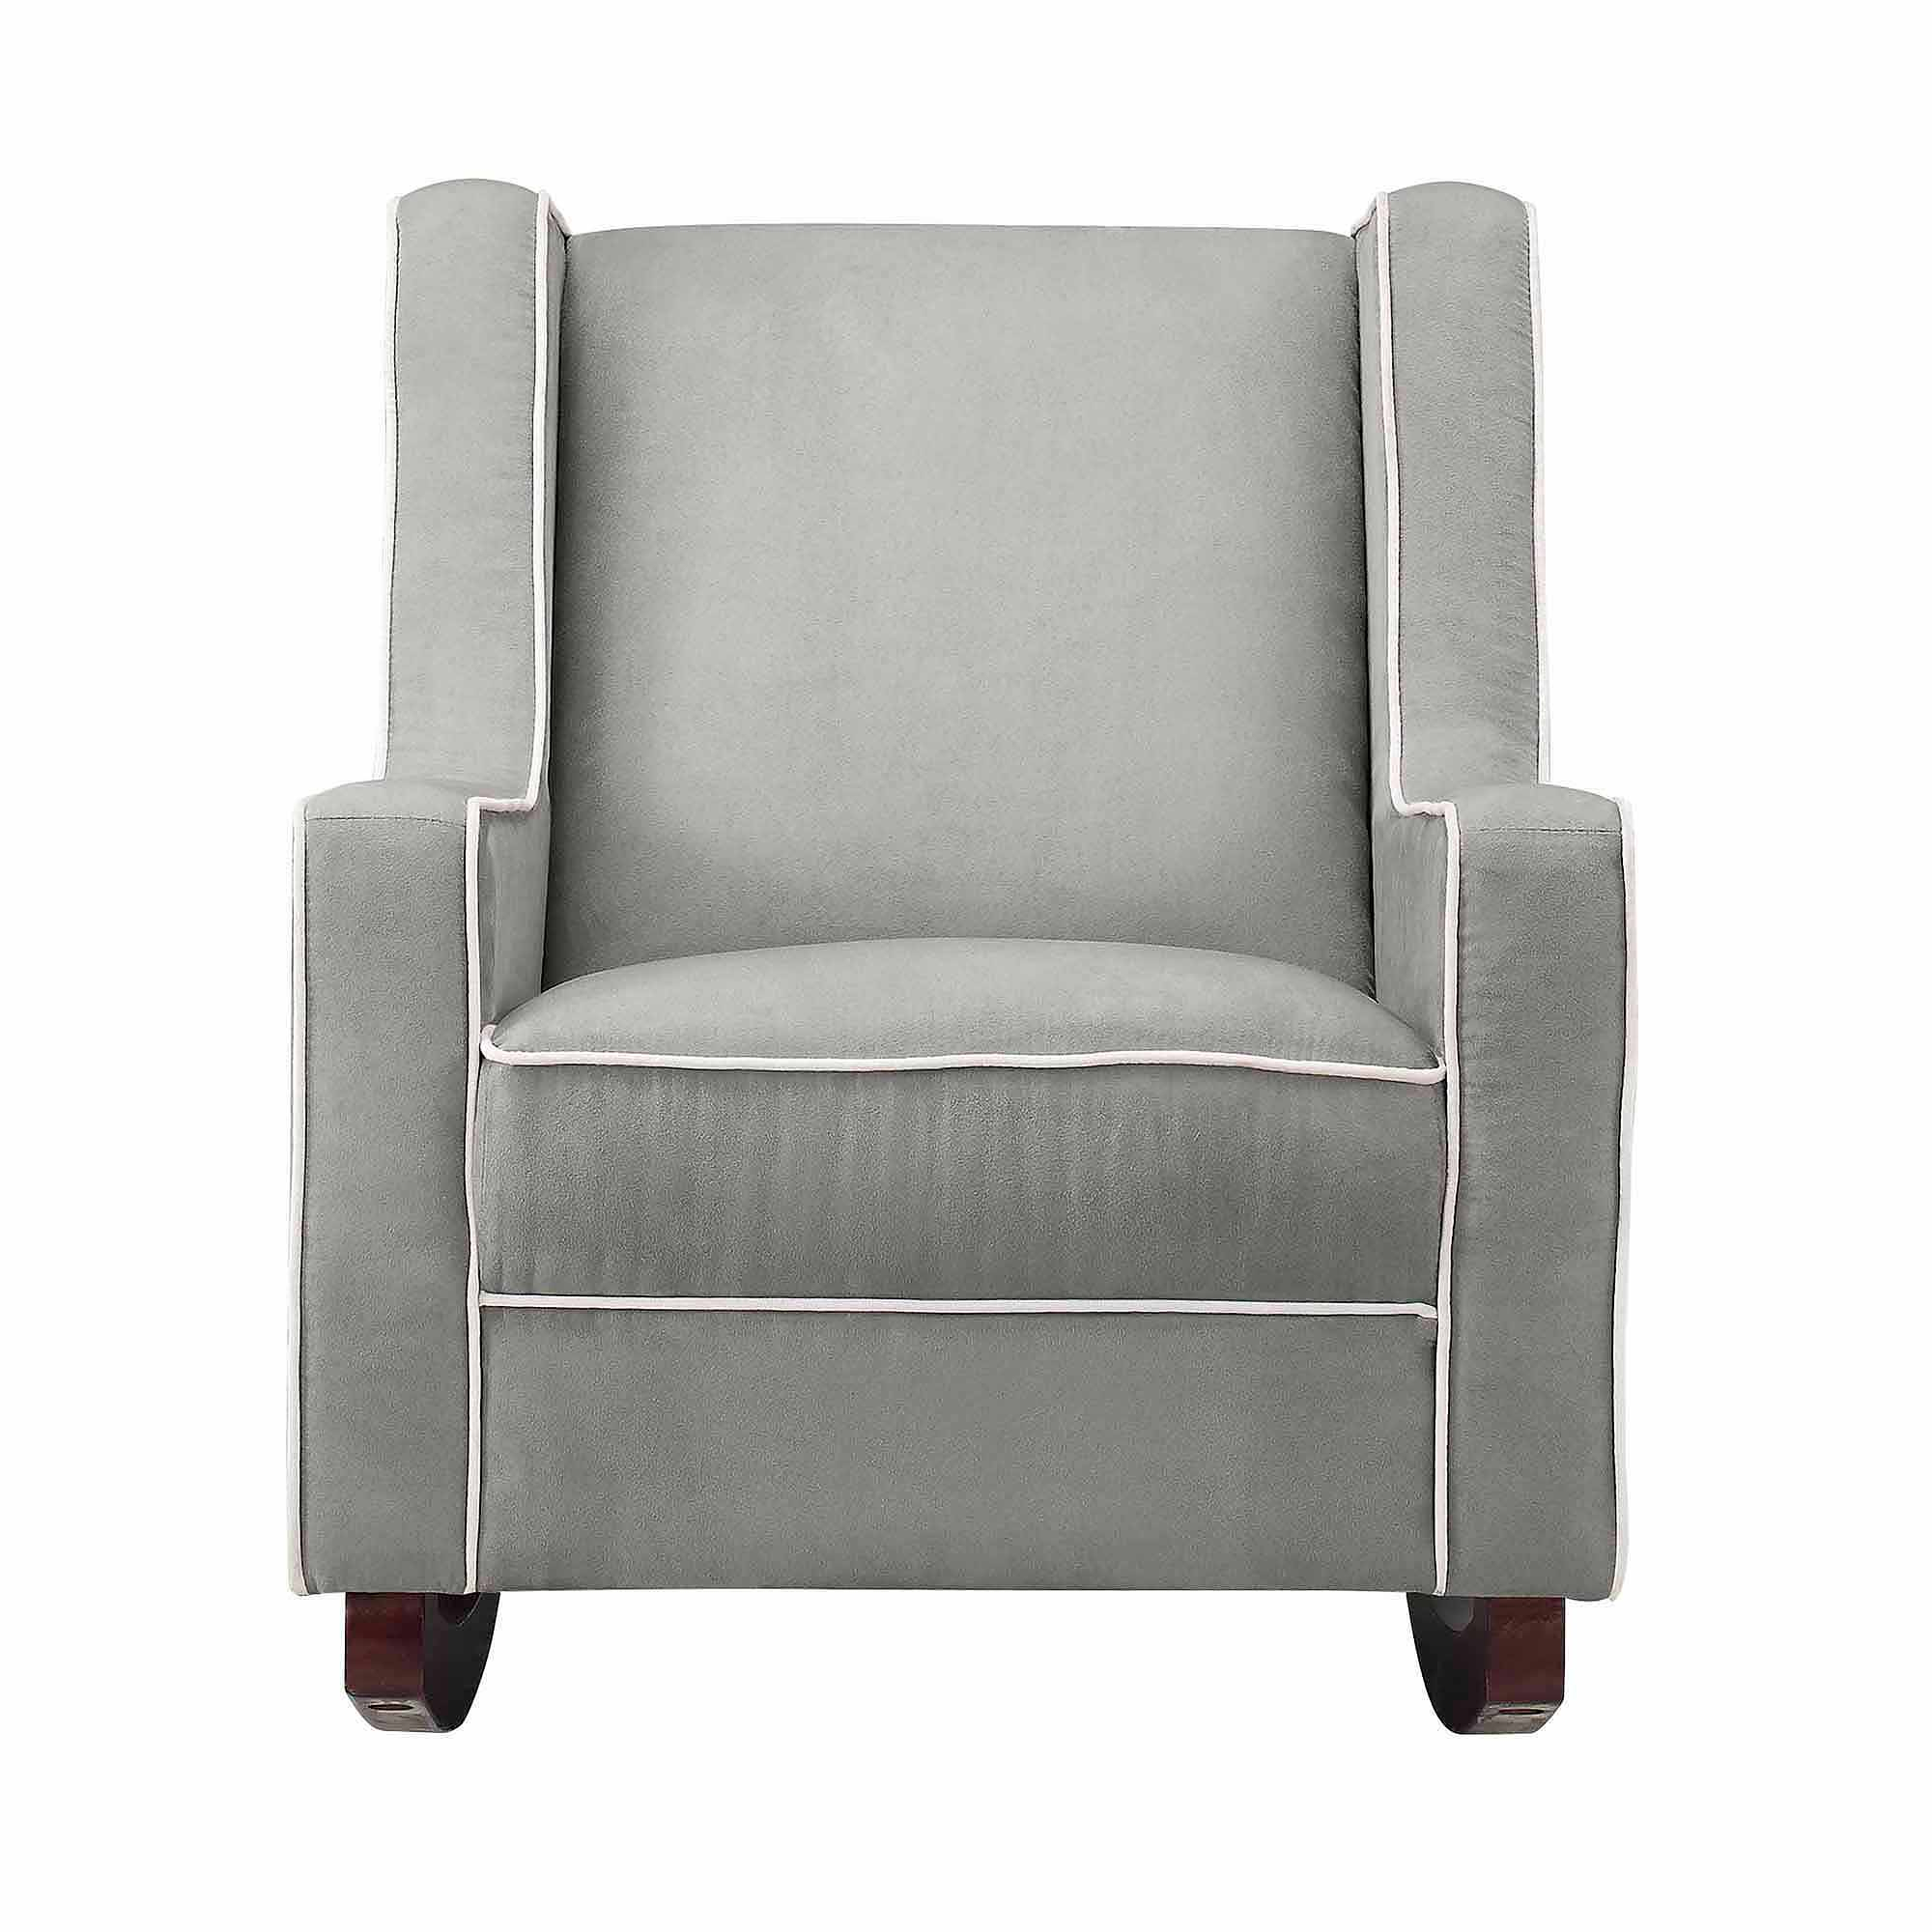 Furniture: Magnificent Walmart Glider Rocker For Fabulous Home Regarding Abbey Swivel Glider Recliners (View 3 of 25)